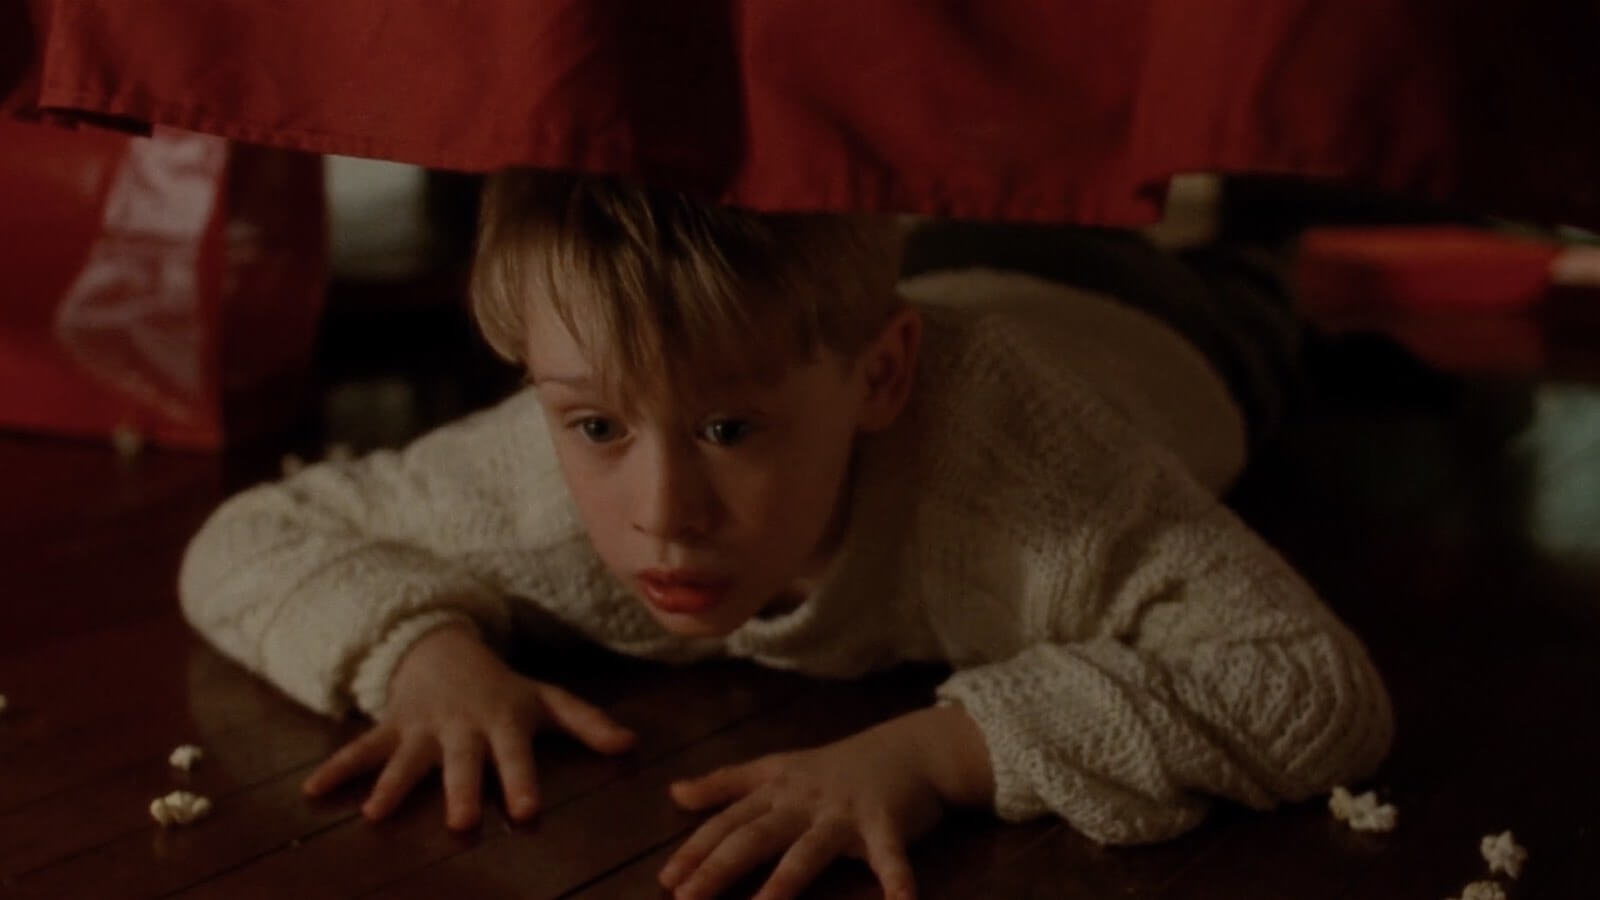 Mastering the Best Christmas Movies - Through Child's Eye - Home Alone